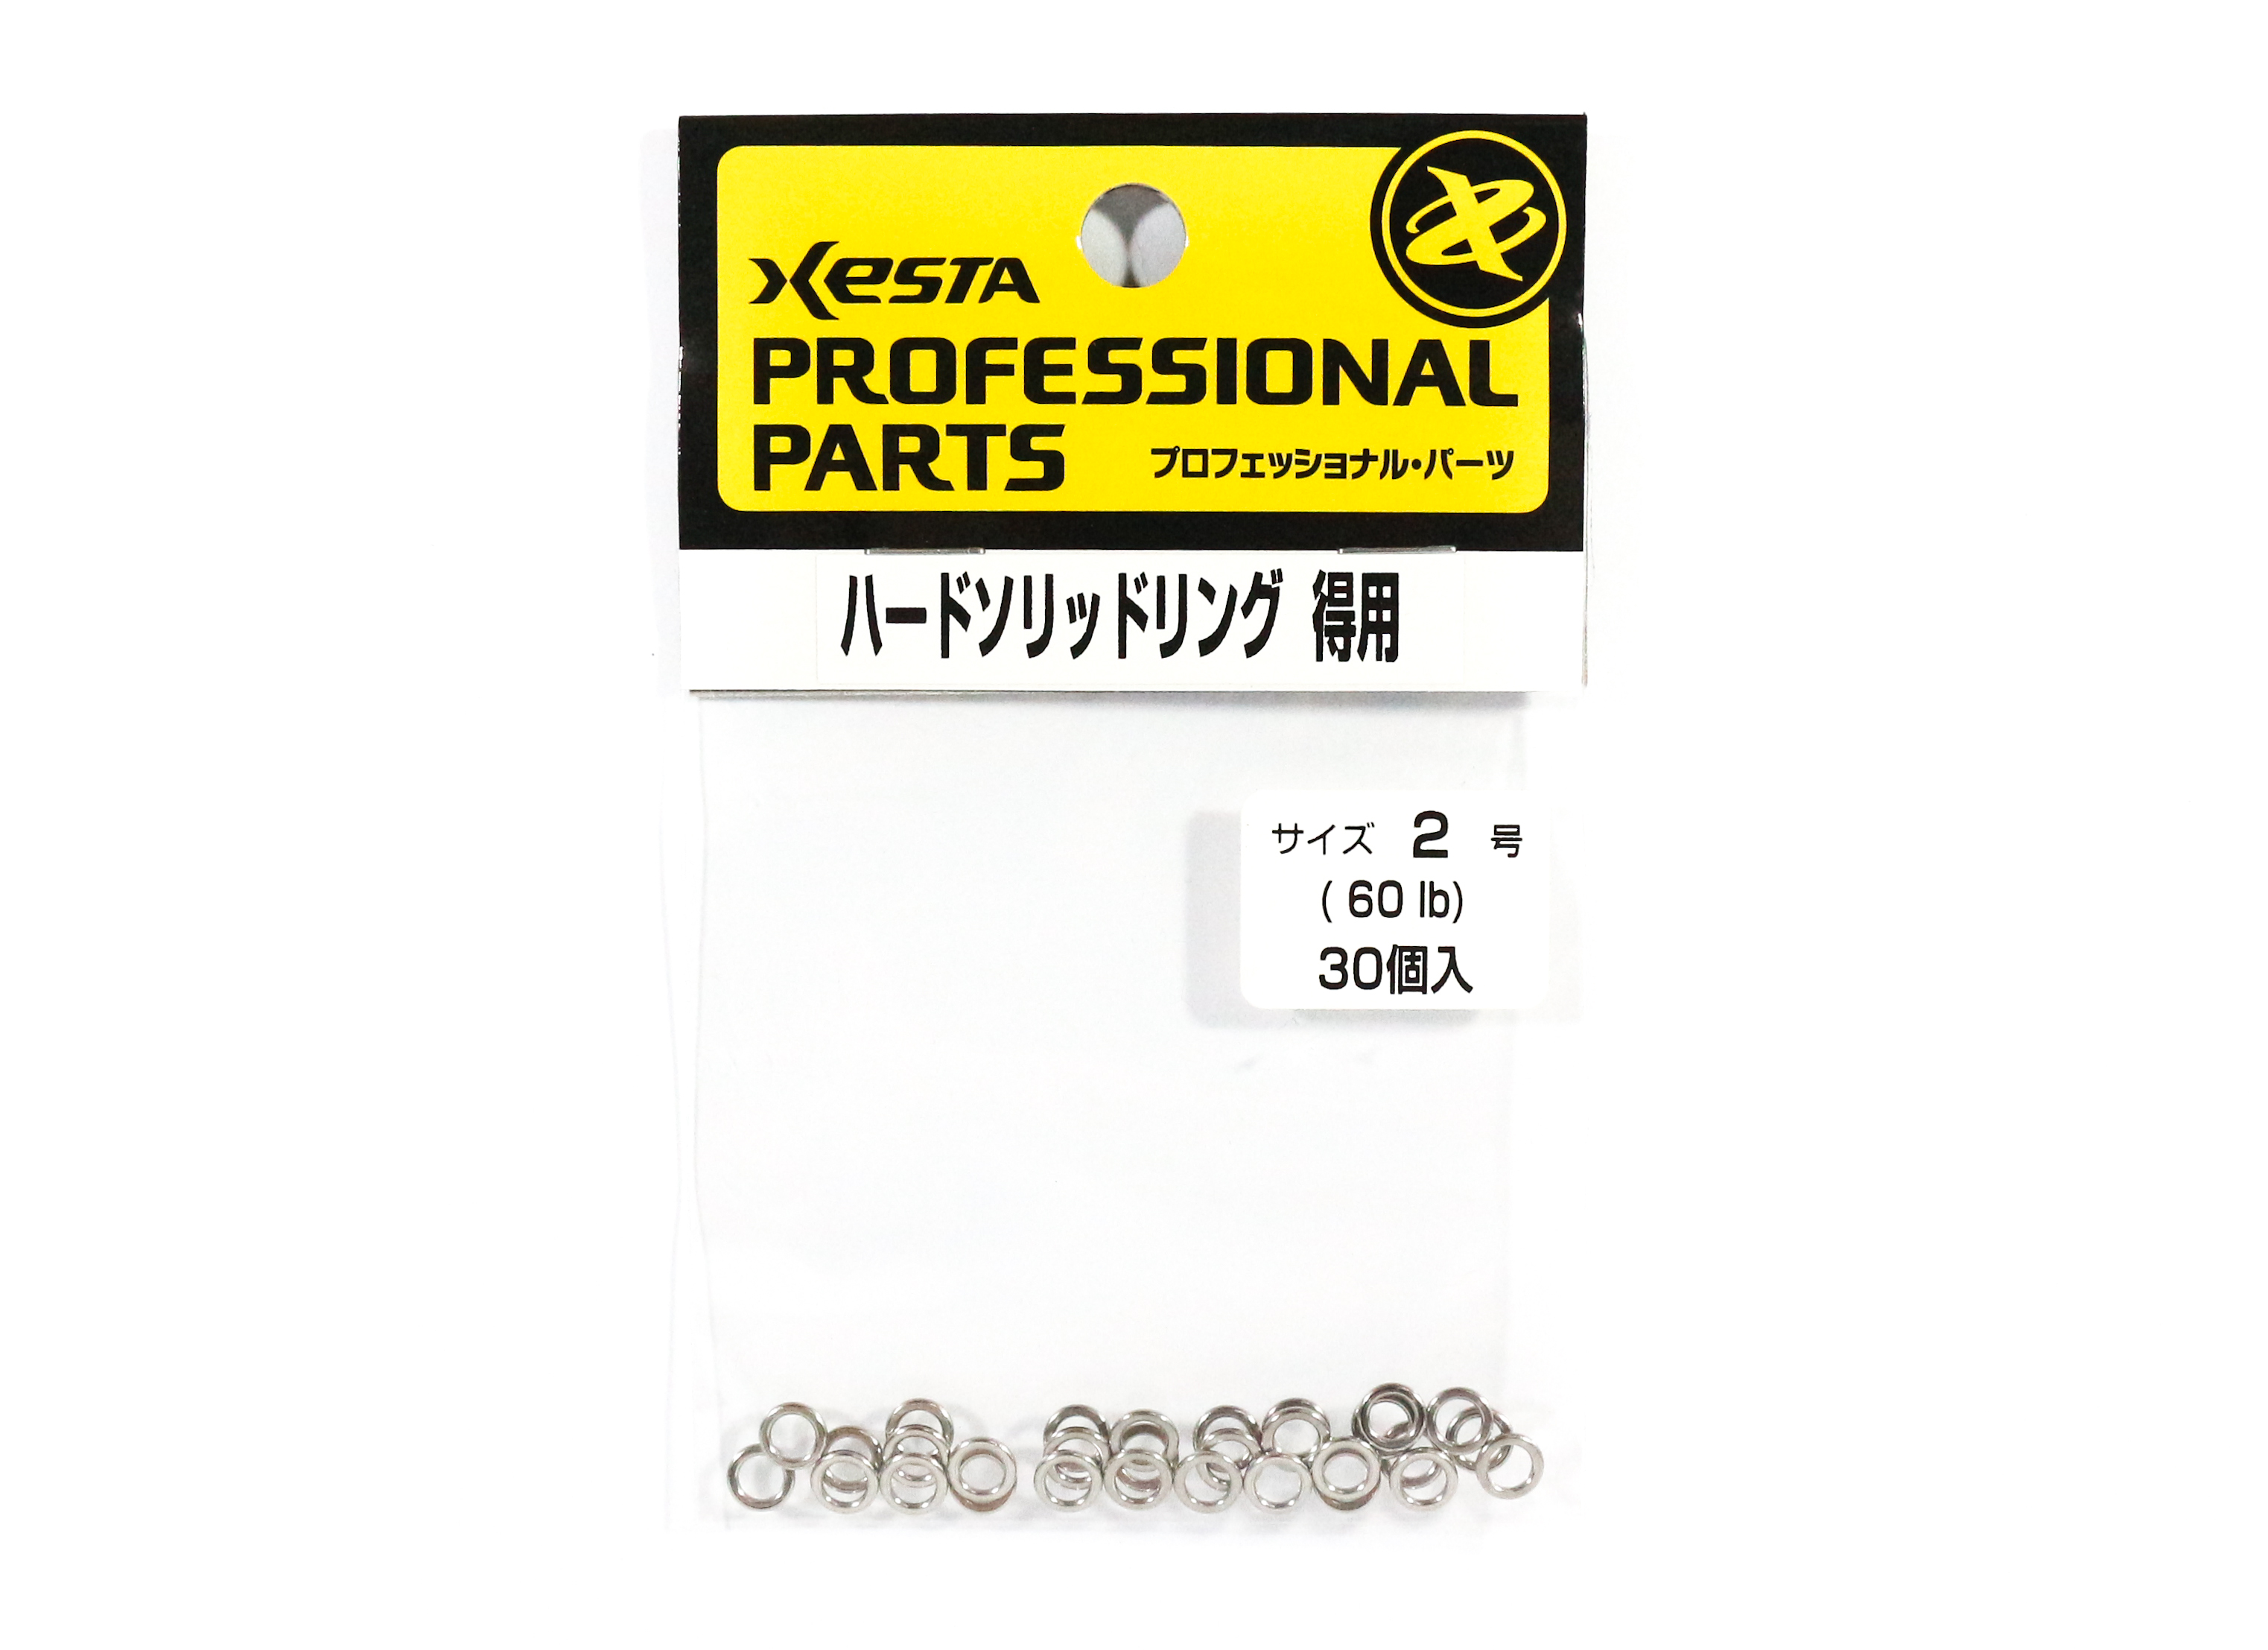 Xesta Hard Solid Rings Value Pack Yellow Package Size 2, 30 pieces (5033)